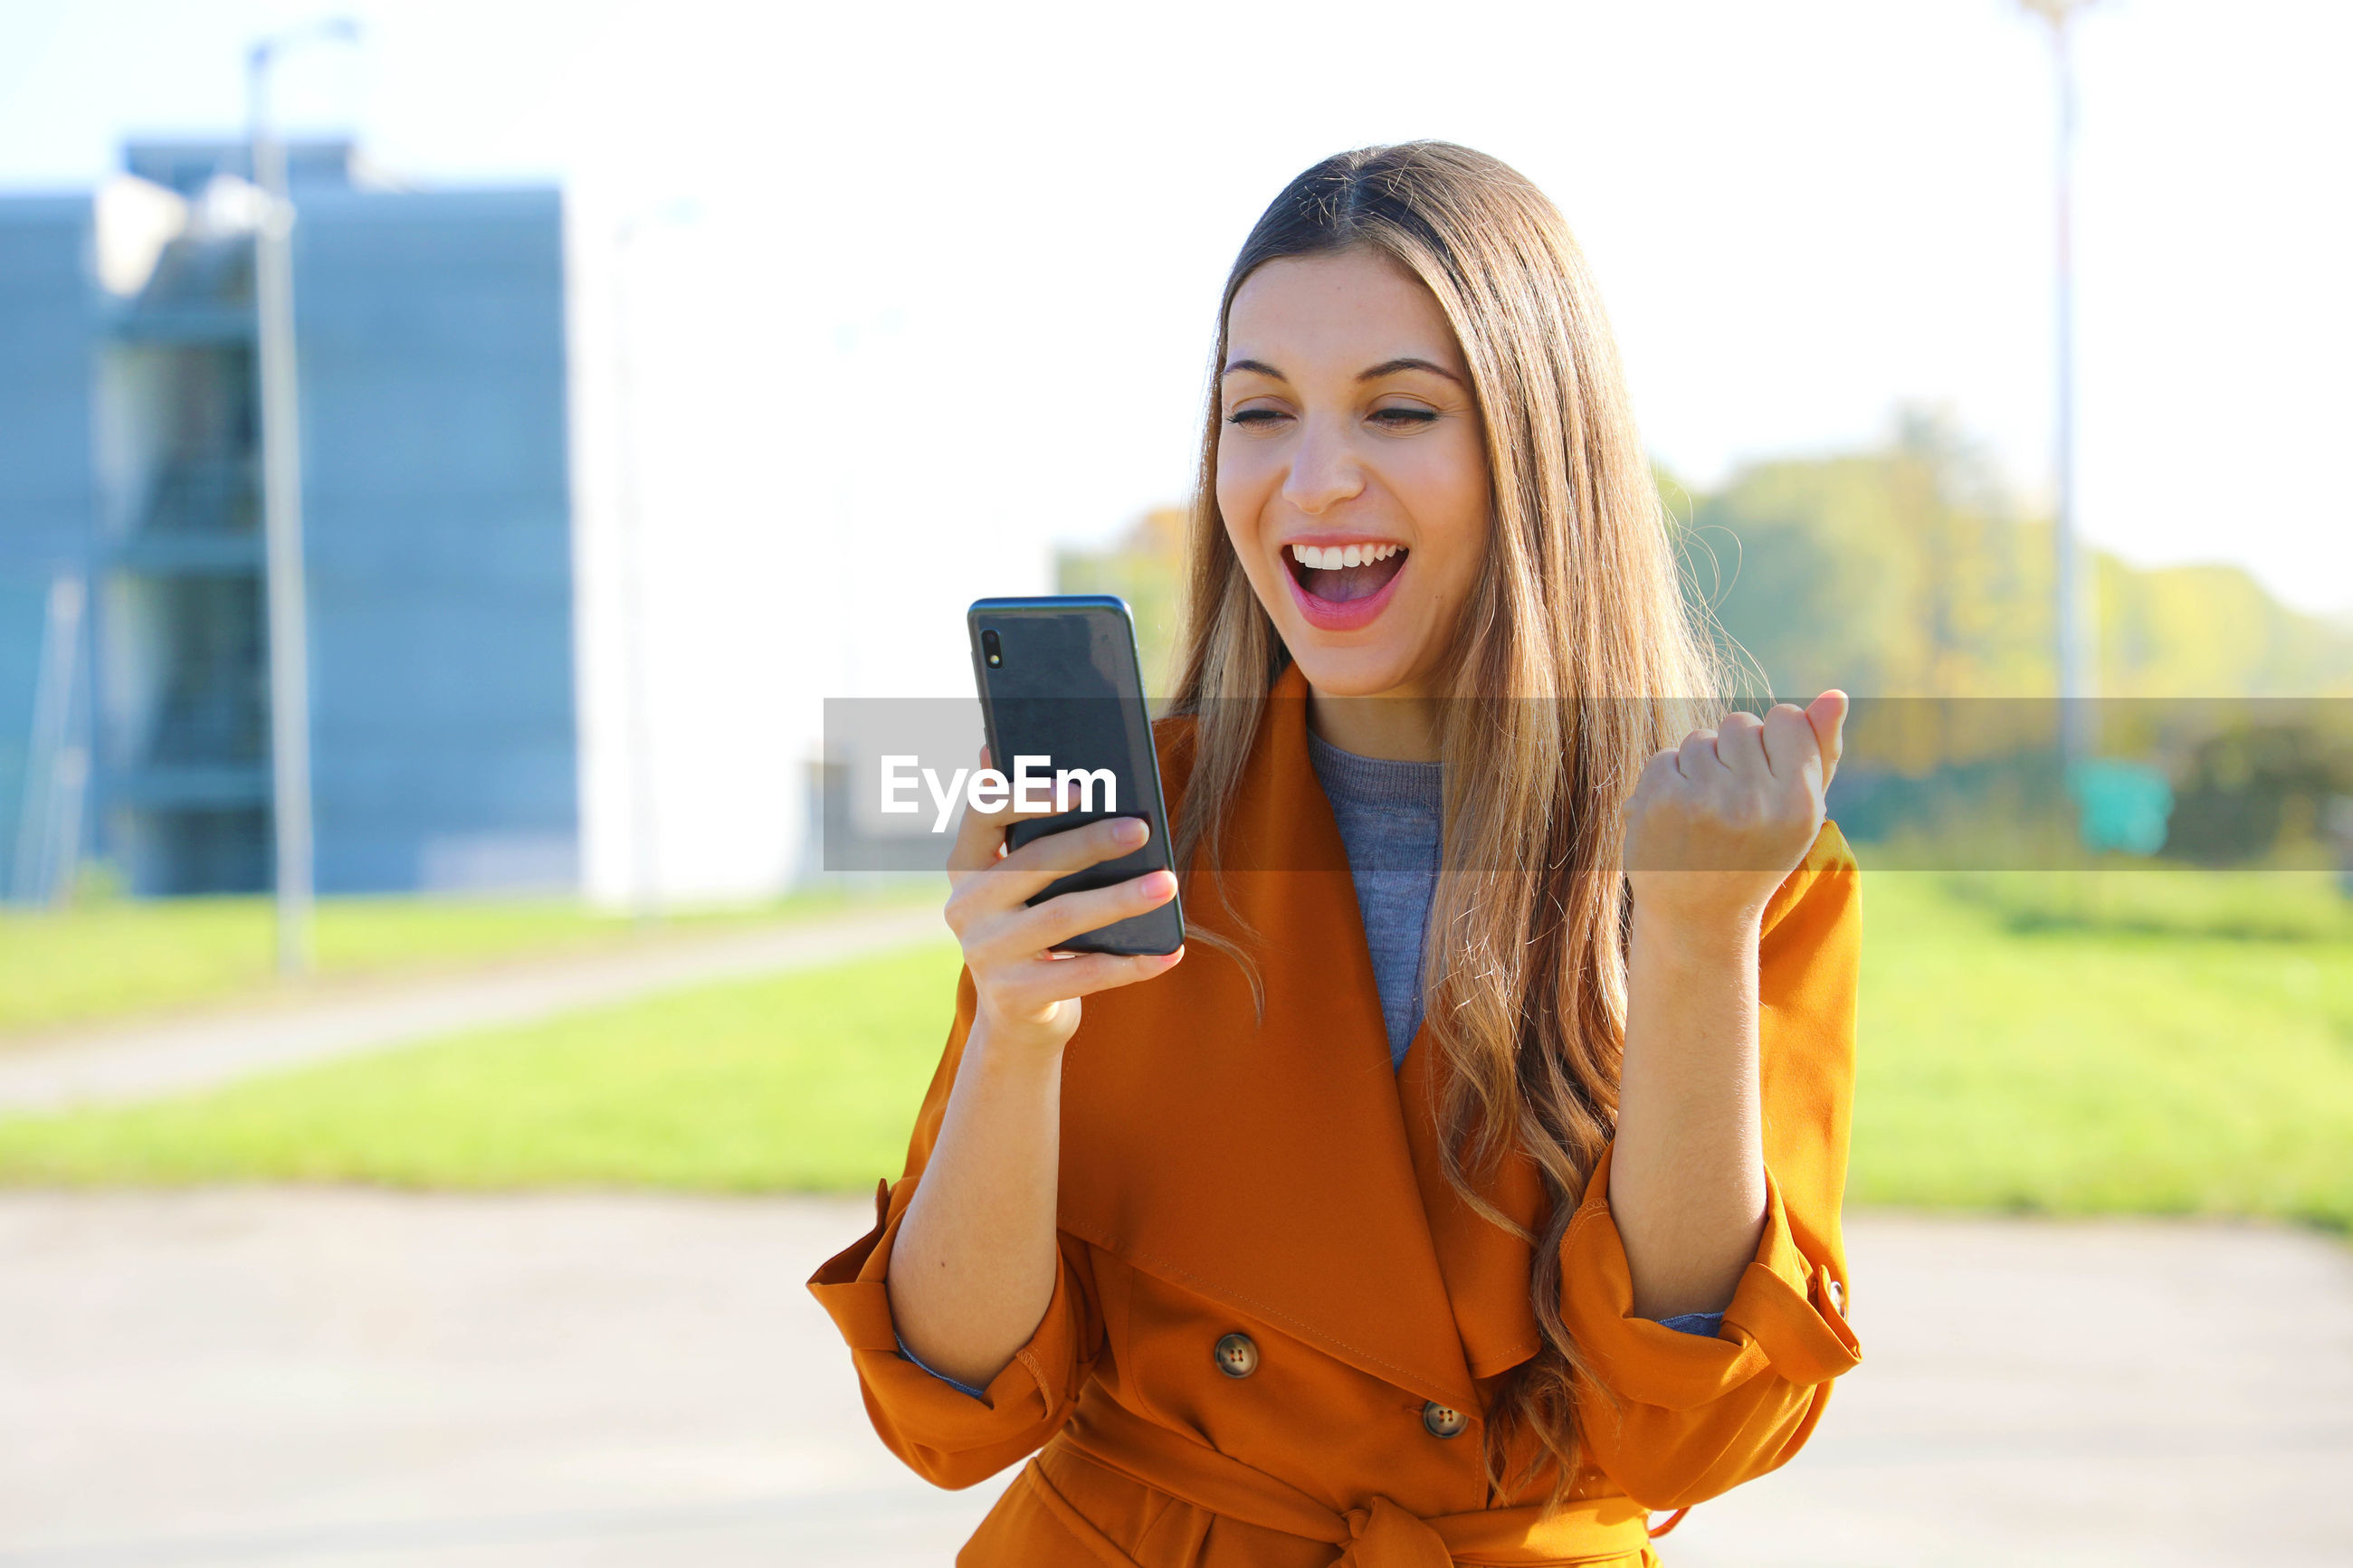 Smiling young woman gesturing while using smart phone